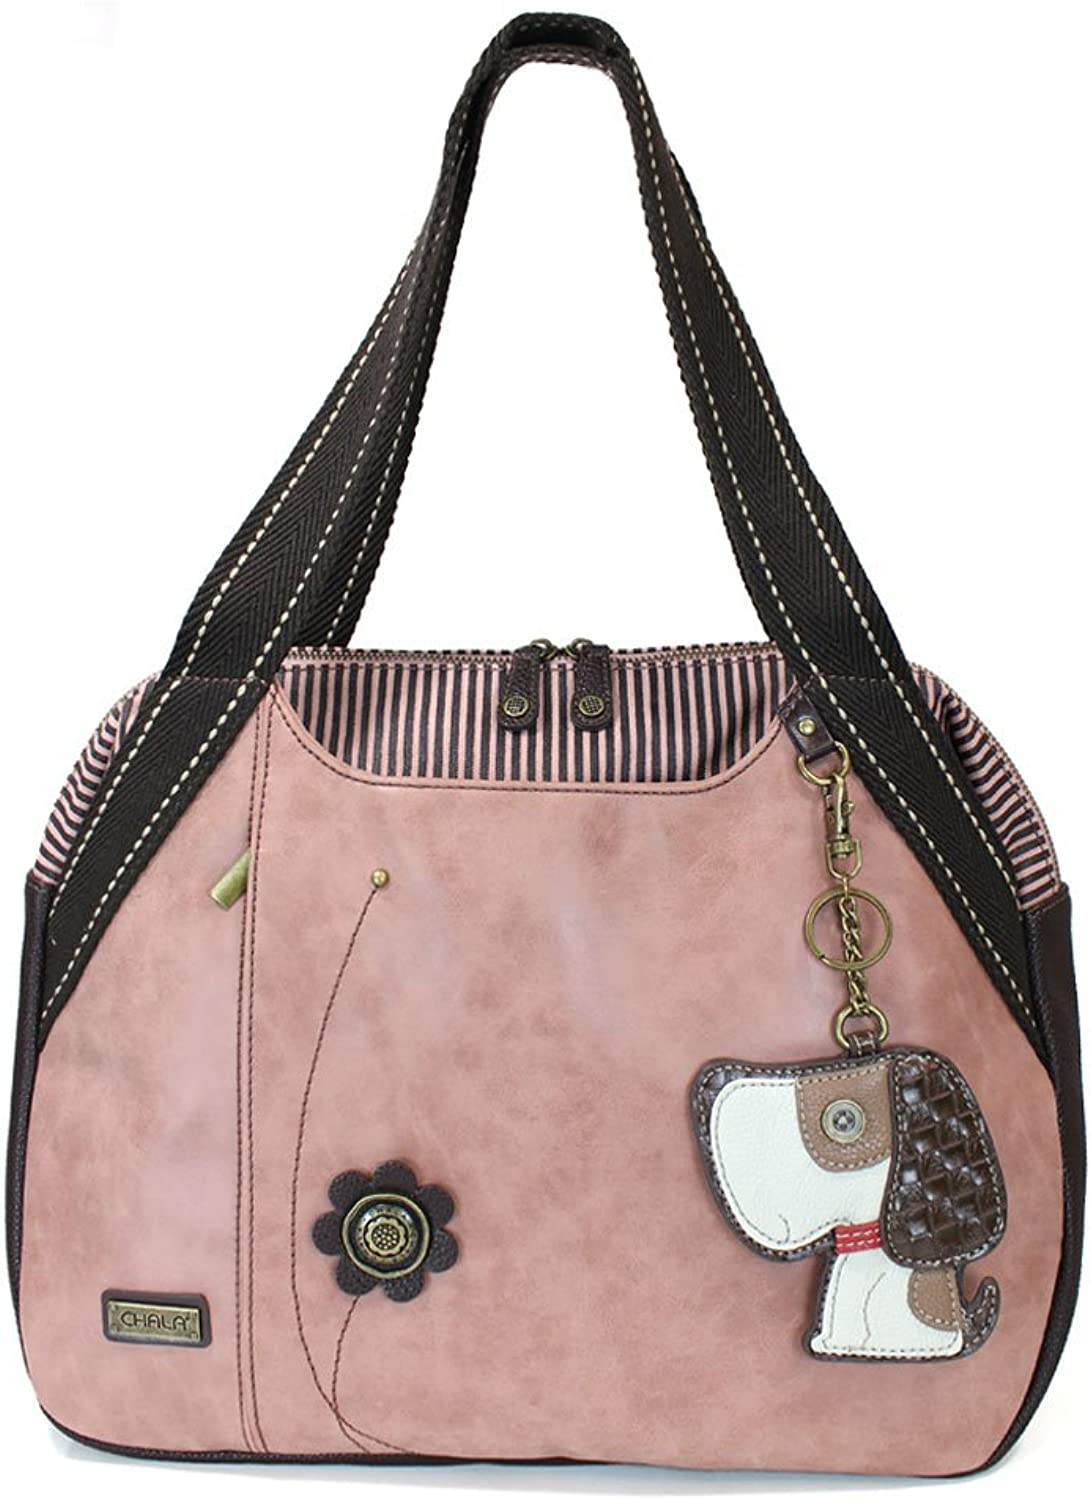 Chala Handbags Dust pink Shoulder Purse Tote Bag with Dog Key Fob coin purse